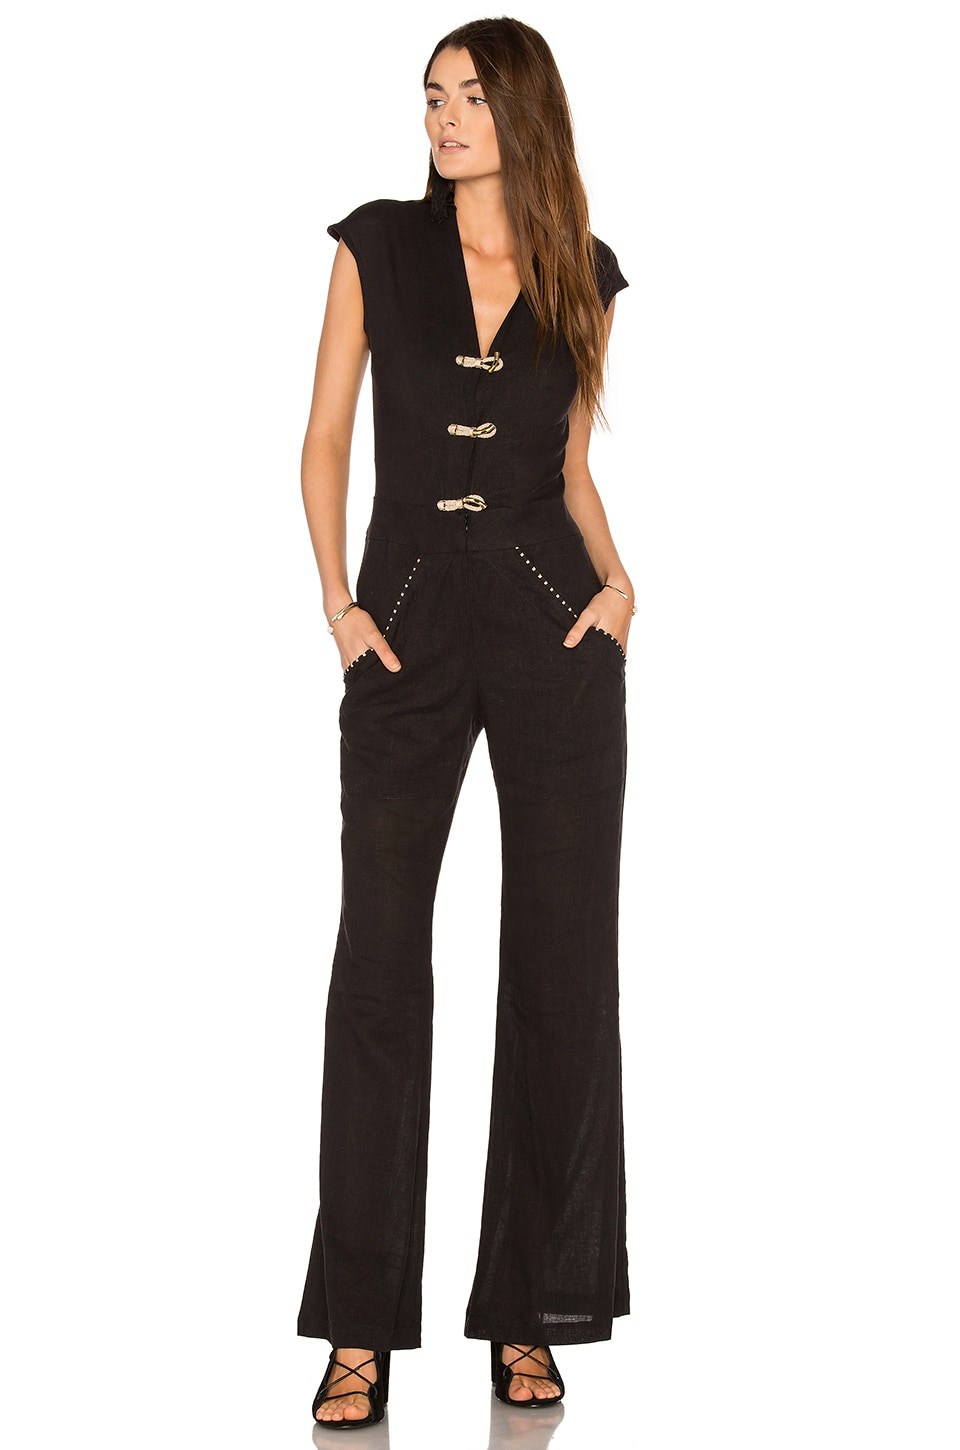 Solid Flaire Jumpsuit by Vix Swimwear